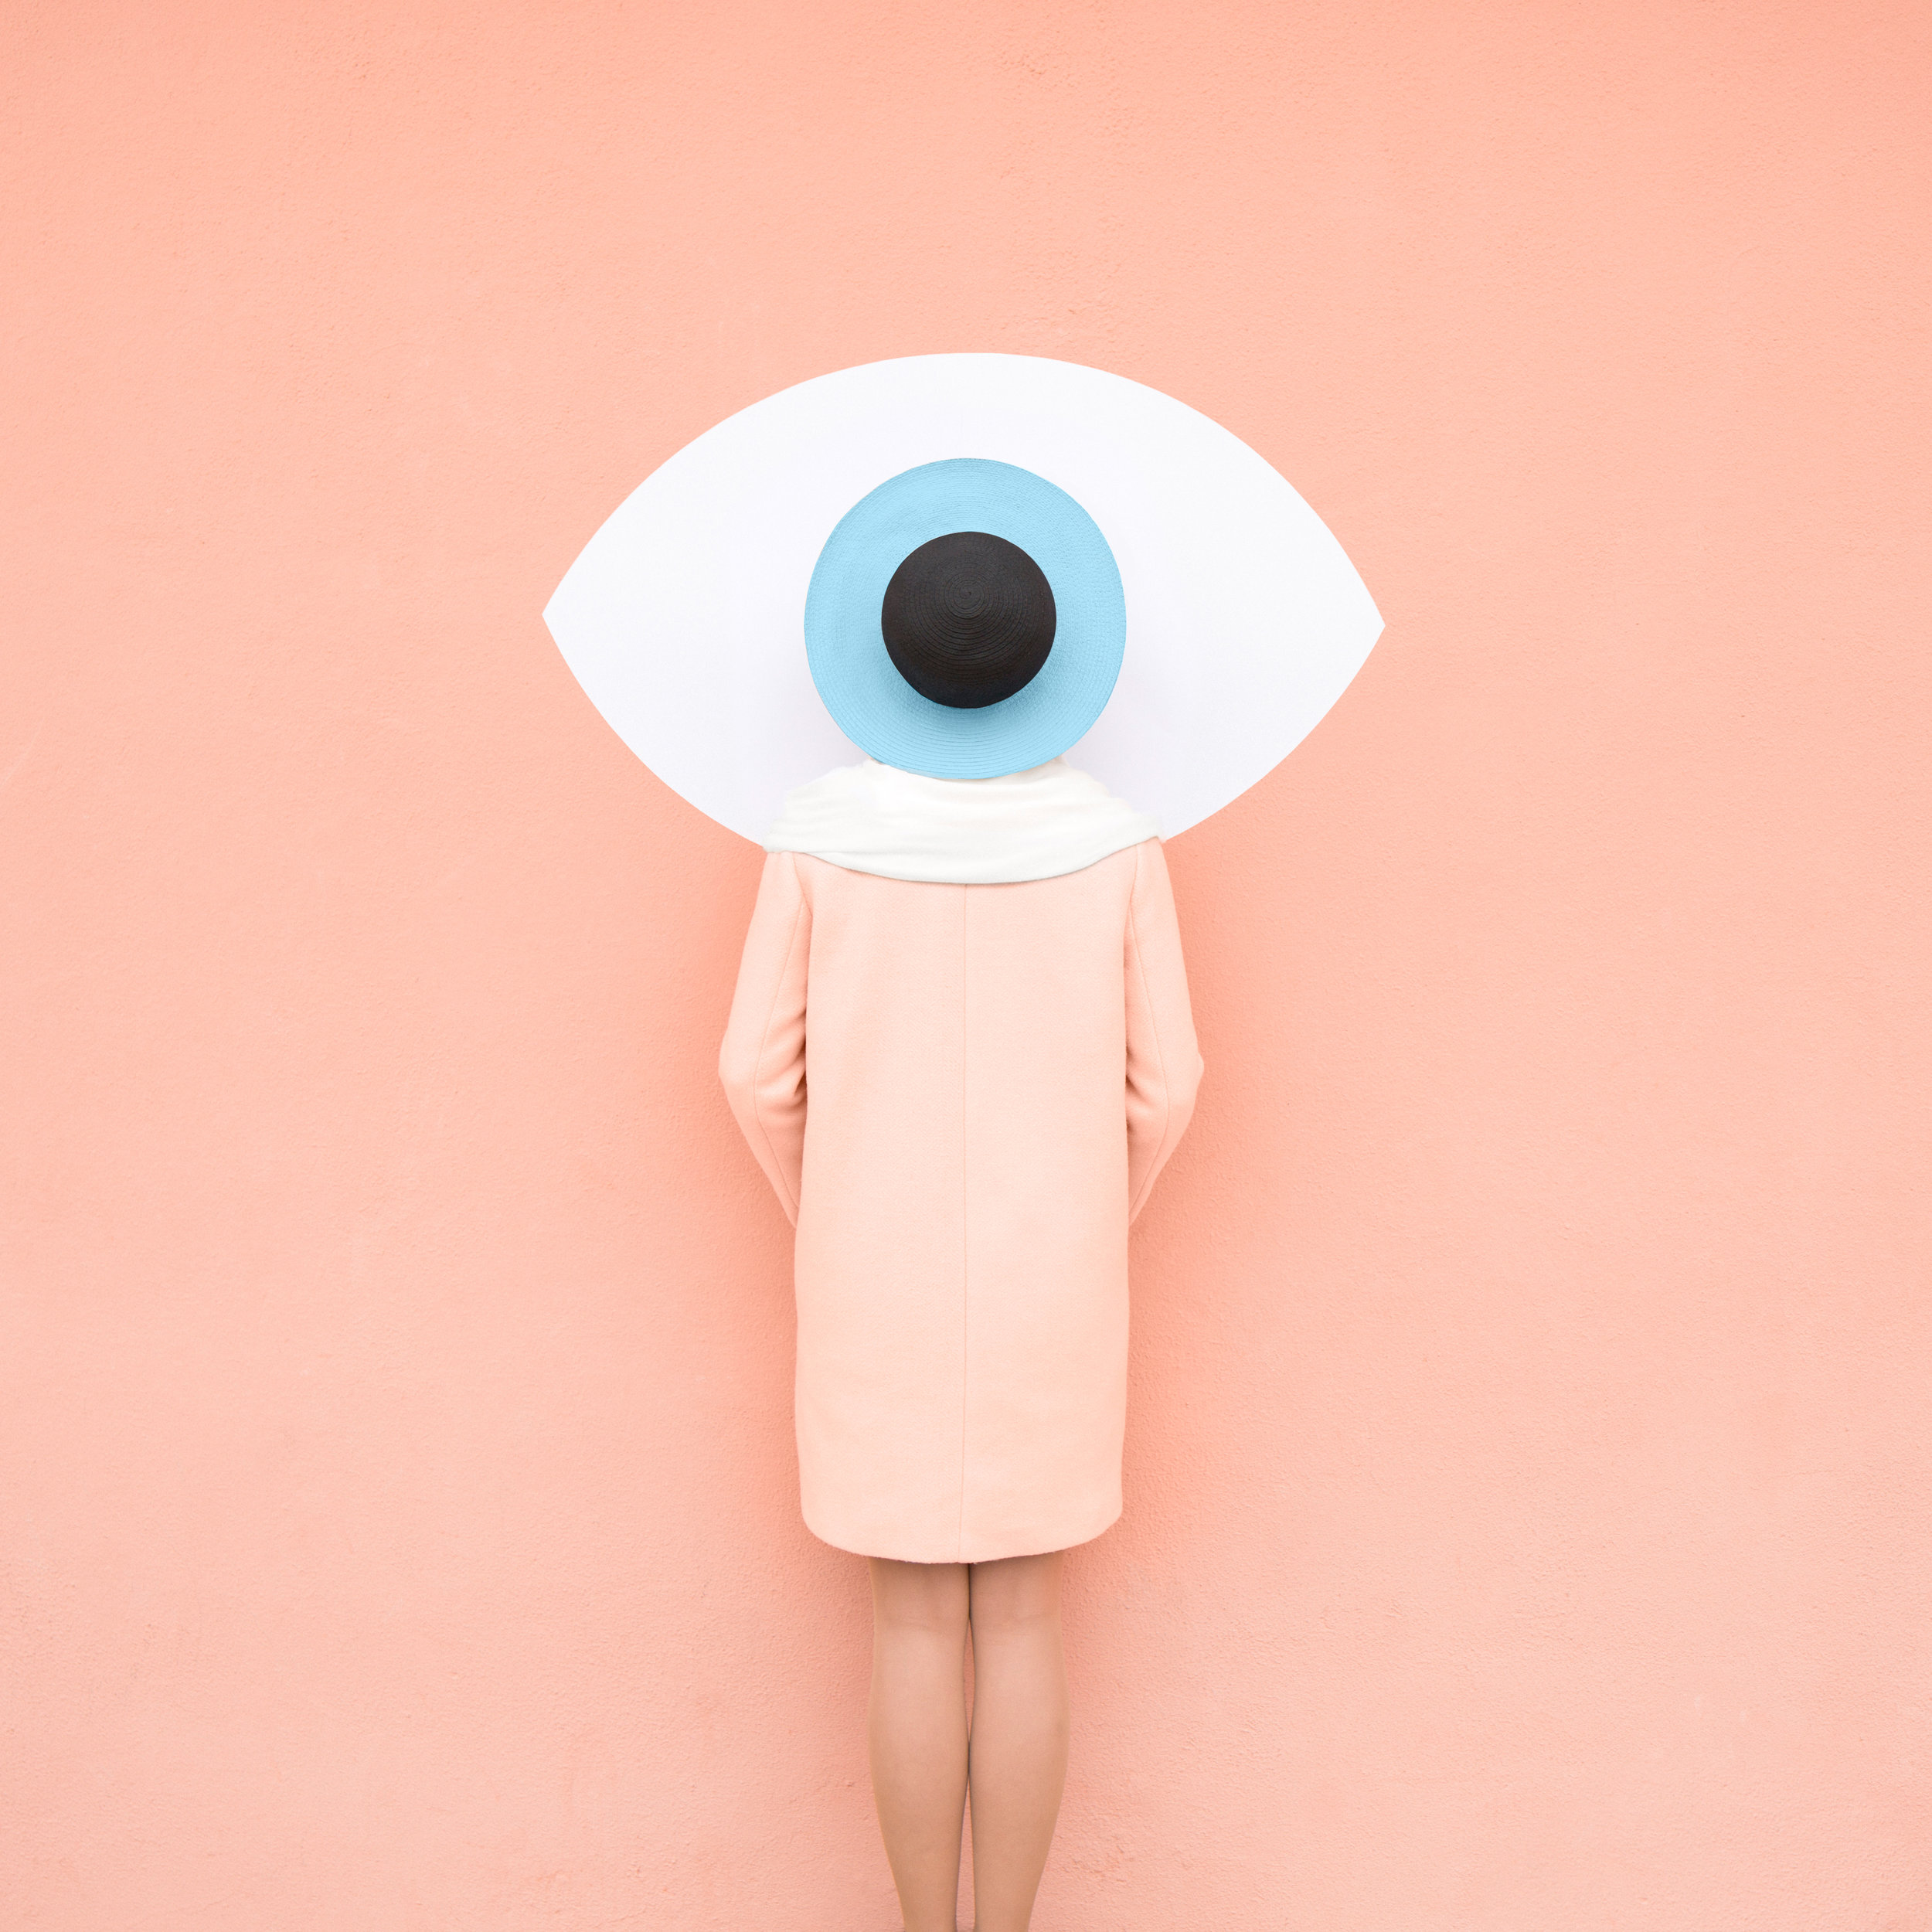 Eye See You, 2018, Archival Pigment Print, 110 × 110 cm (43 3/10 × 43 3/10 in